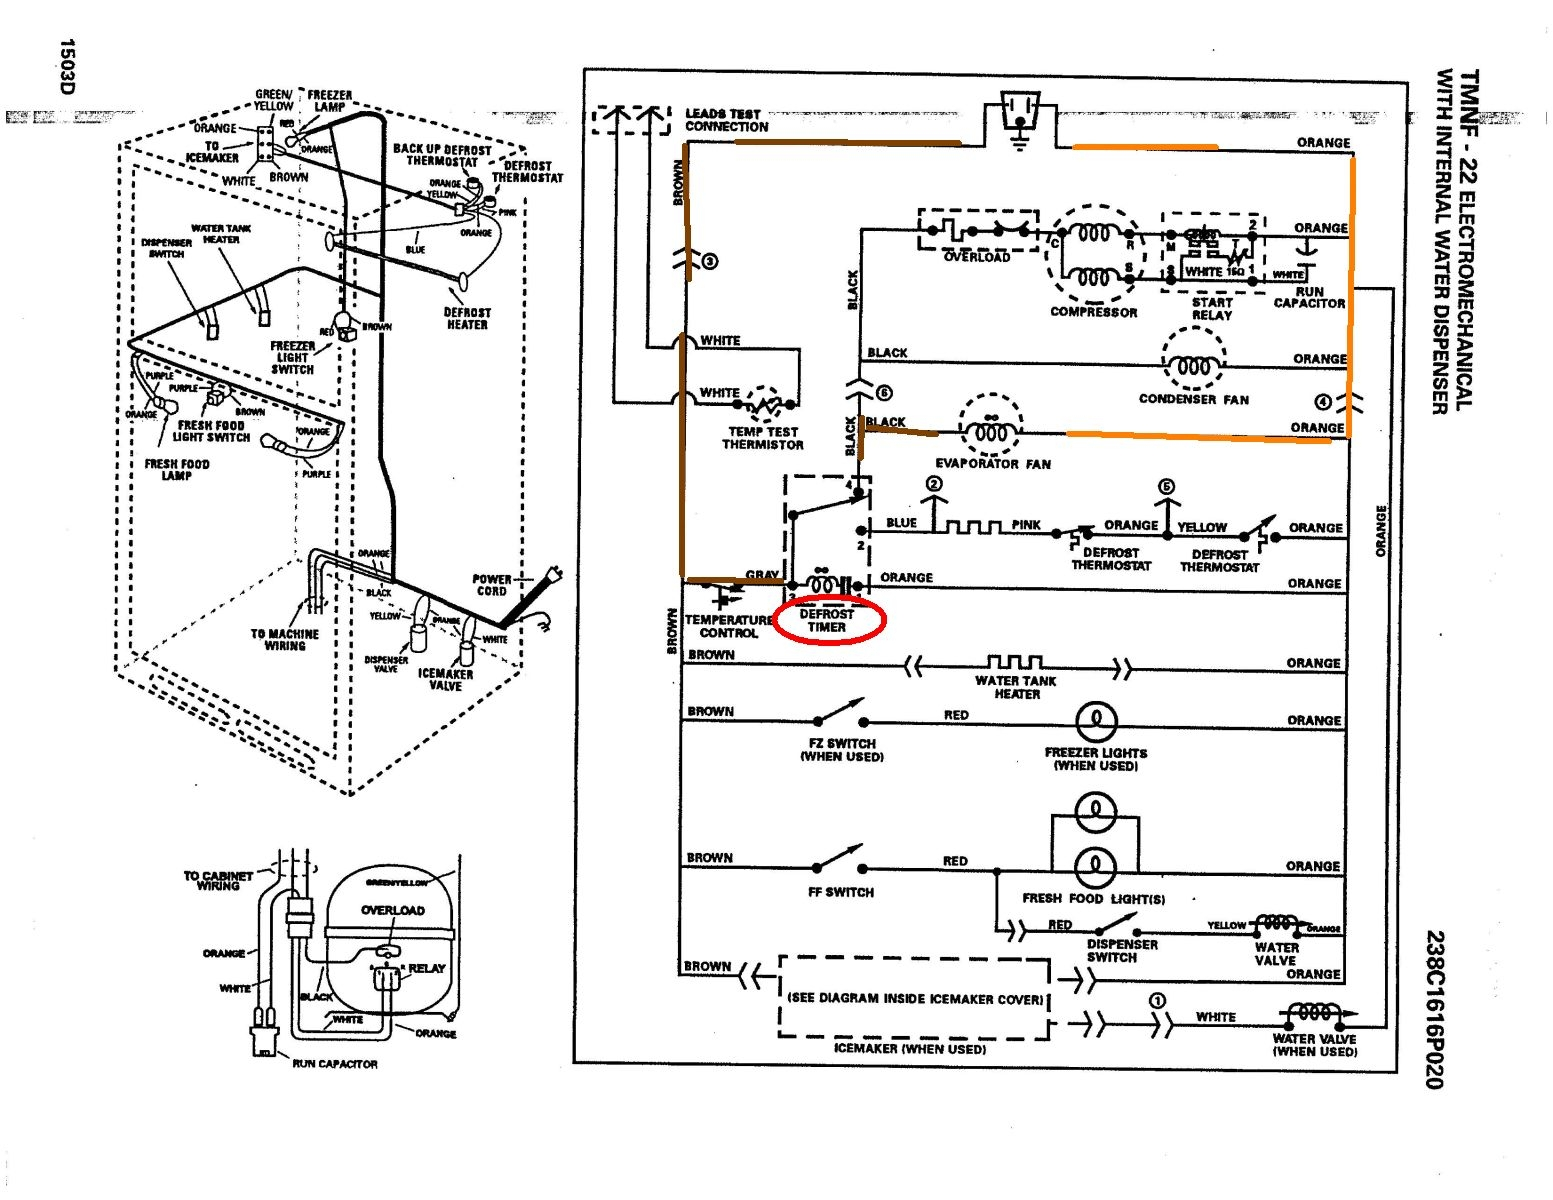 refrigerator wiring diagram pdf Download-refrigerator wiring diagram pdf Download Wiring Diagram Ge Refrigerator GE Profile Mesmerizing 8 i DOWNLOAD Wiring Diagram 8-p